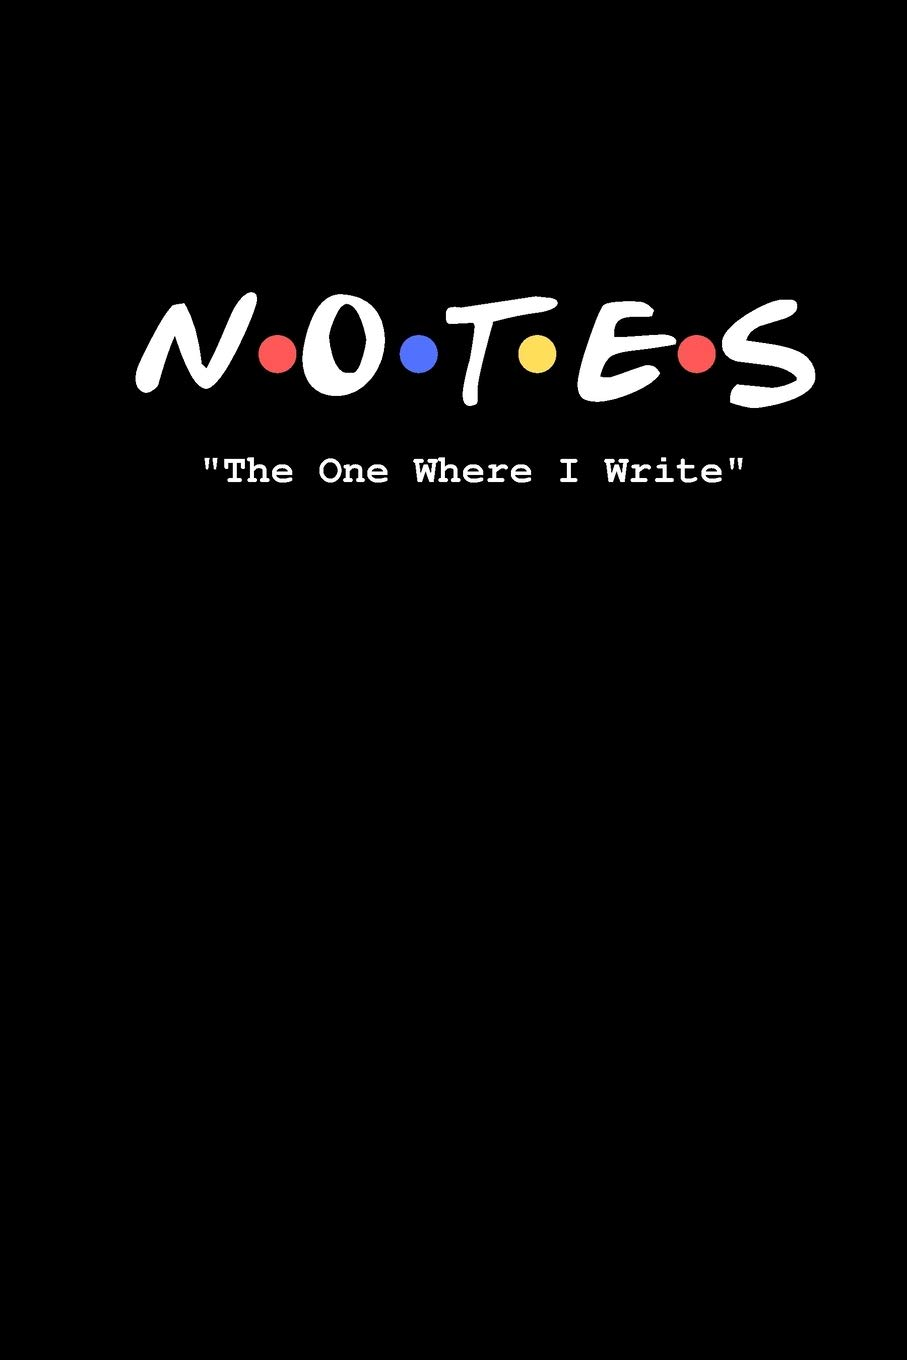 amazon com notes the one where i write friends tv show inspired title logo notebook and daily journal pop culture 9781670500724 culturer pop books friends tv show inspired title